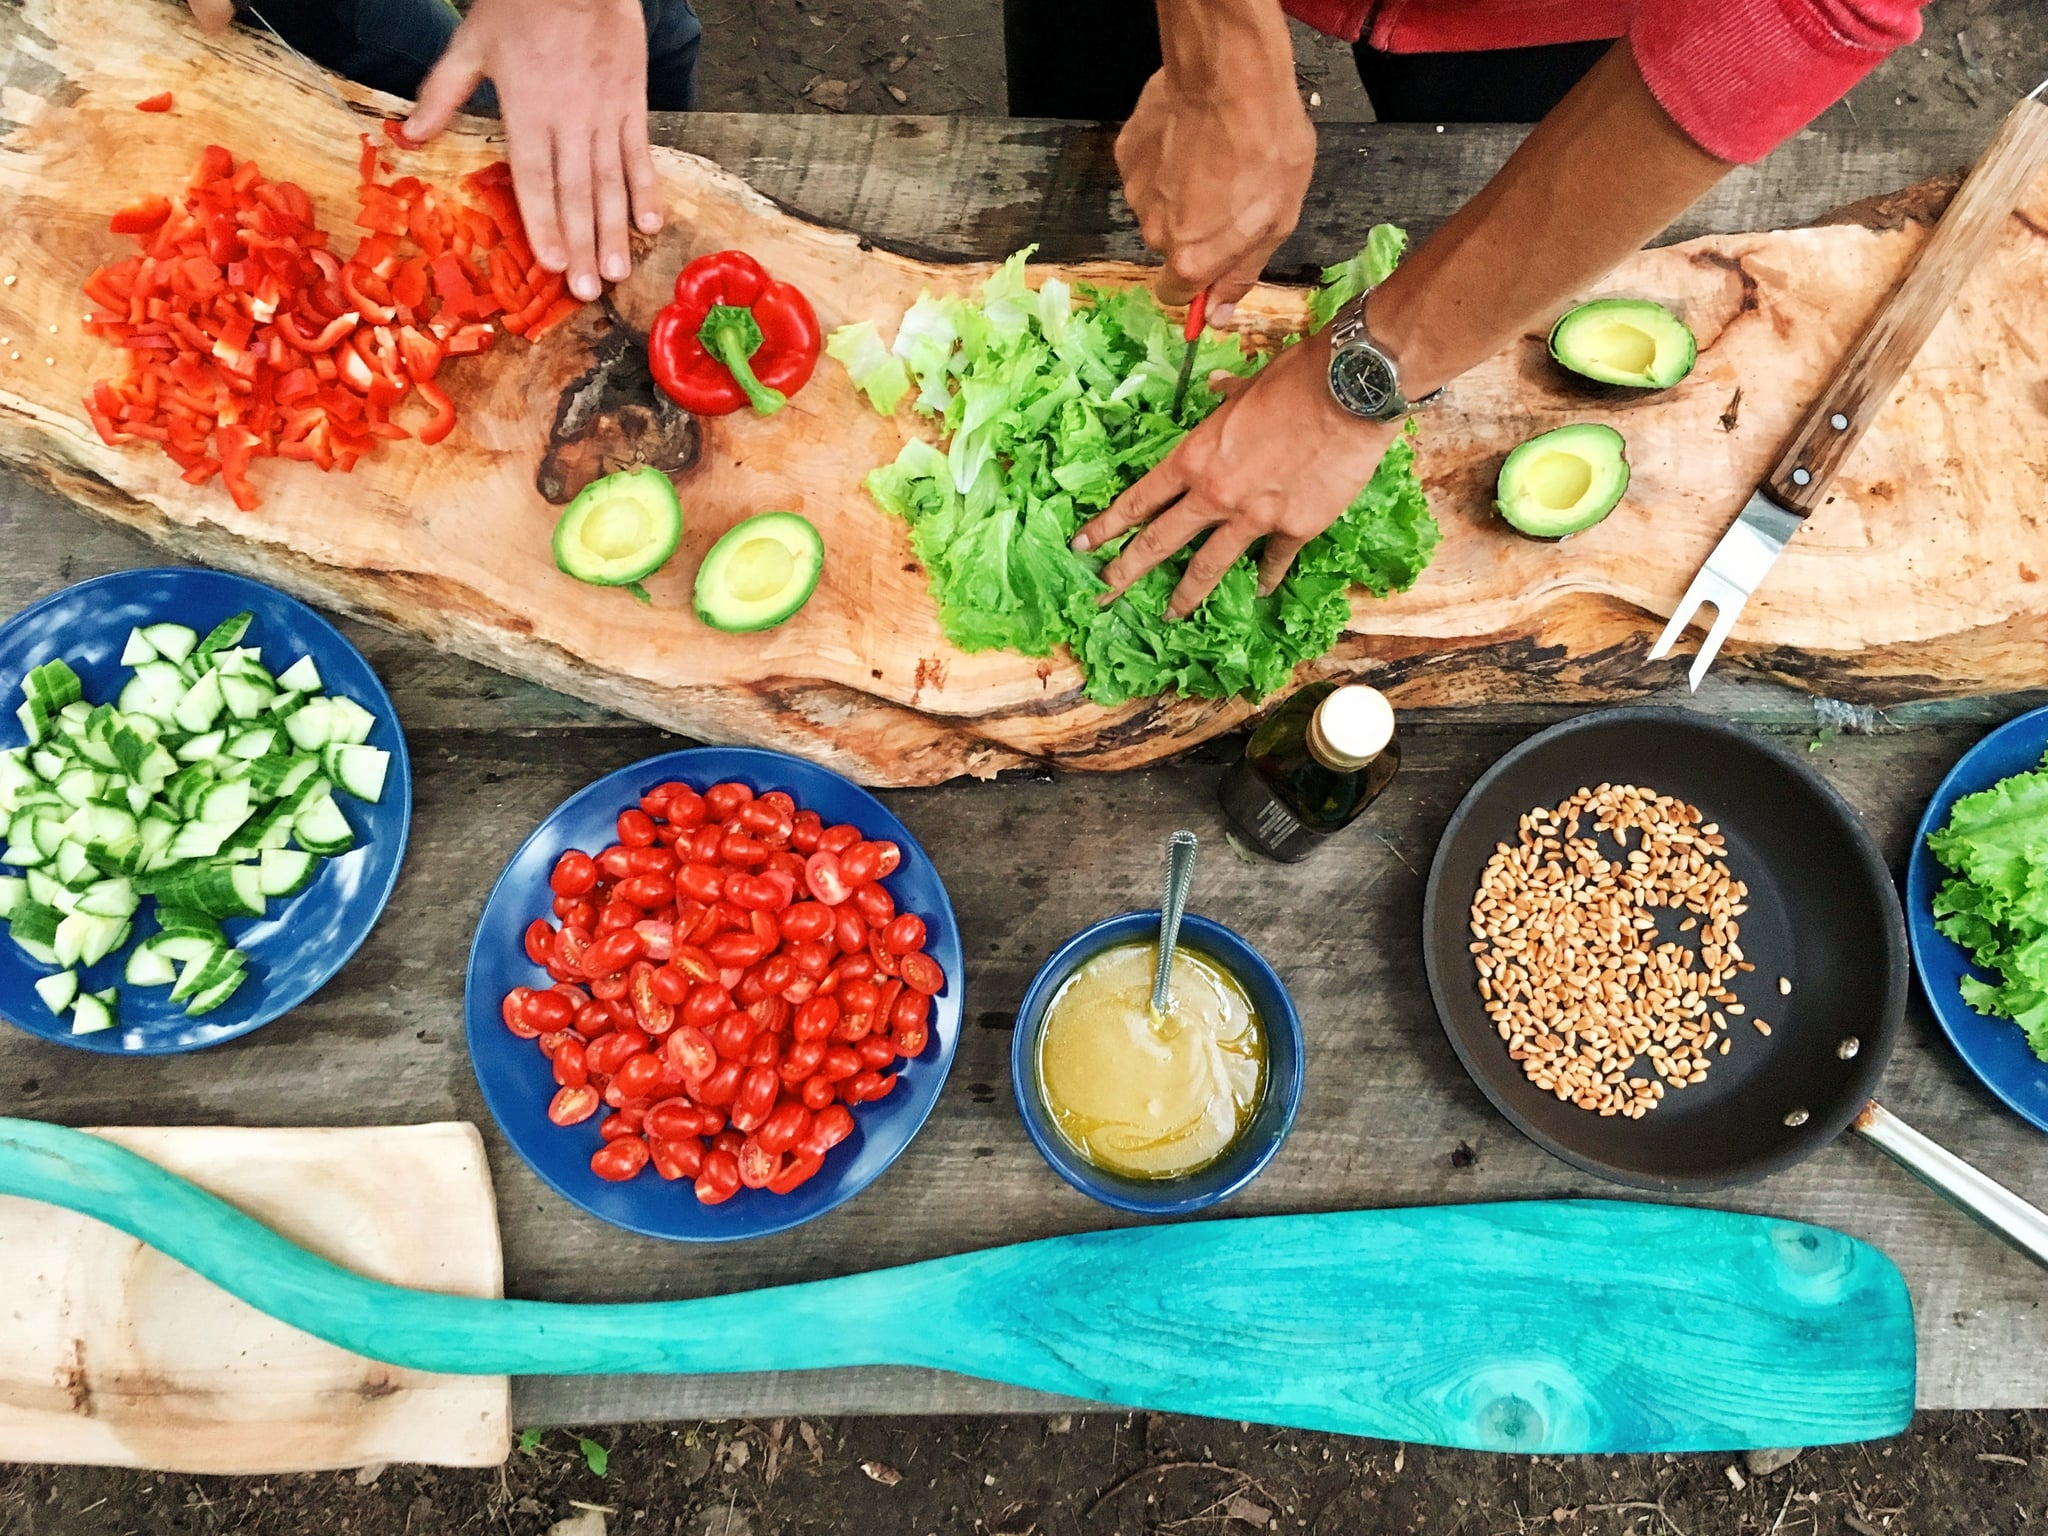 Healthy Diet Promotes Weight Loss Rather the Genetics